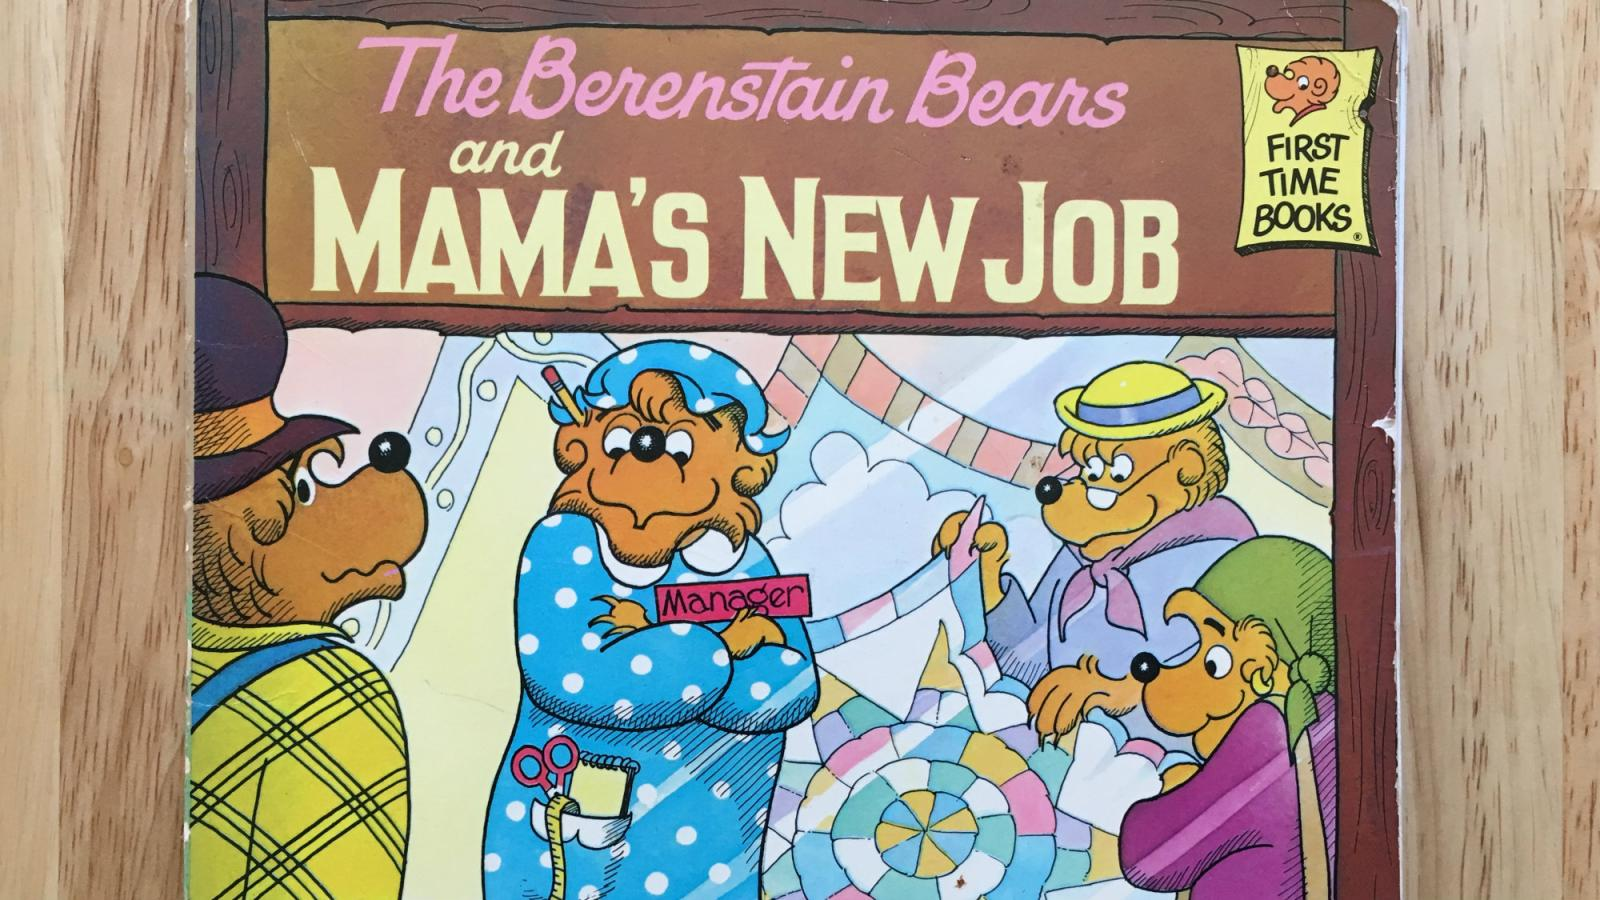 What the Berenstain Bears and Mama's New Job reveals about (human